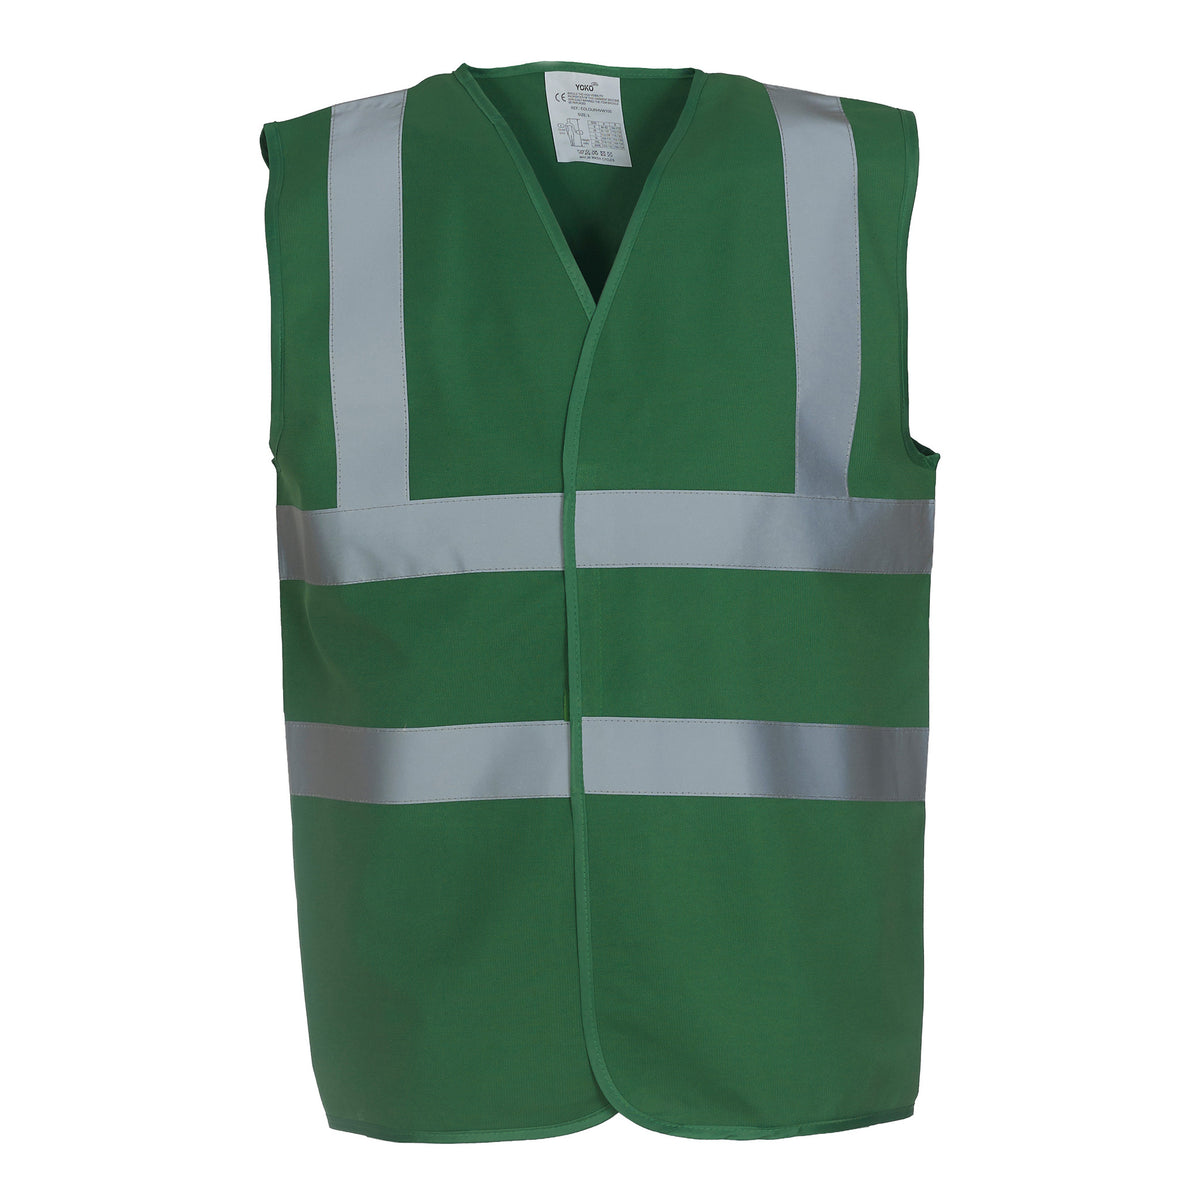 Enhanced Visibility Vest - peterdrew.com  - 4